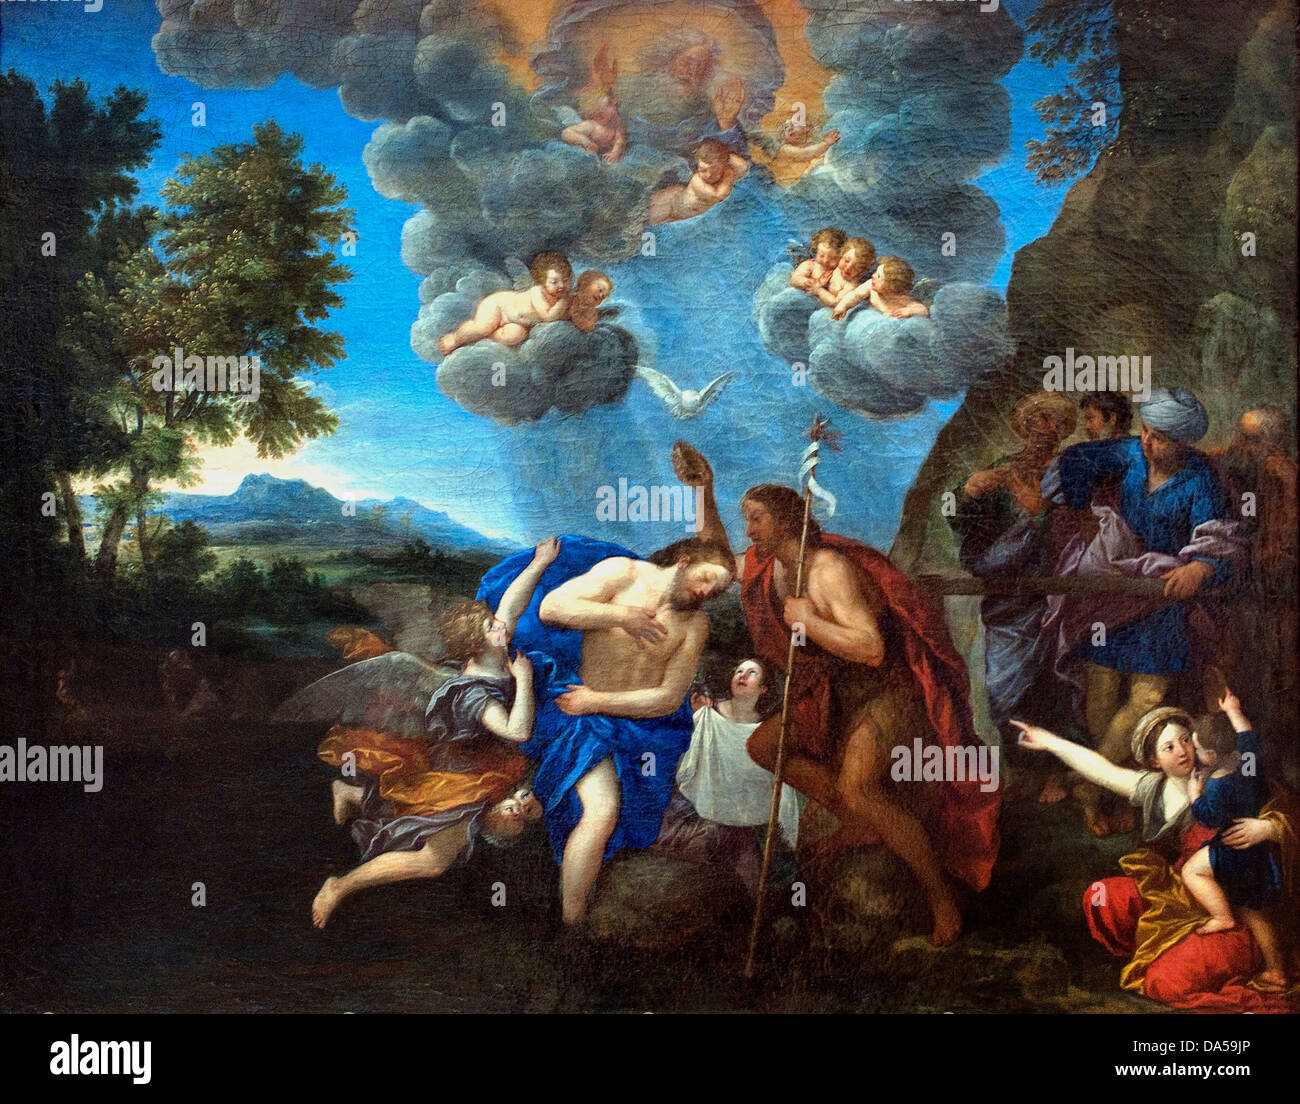 The Baptism of Christ 1630 Francesco Albani 1578-1660 Italy Italian - Stock Image